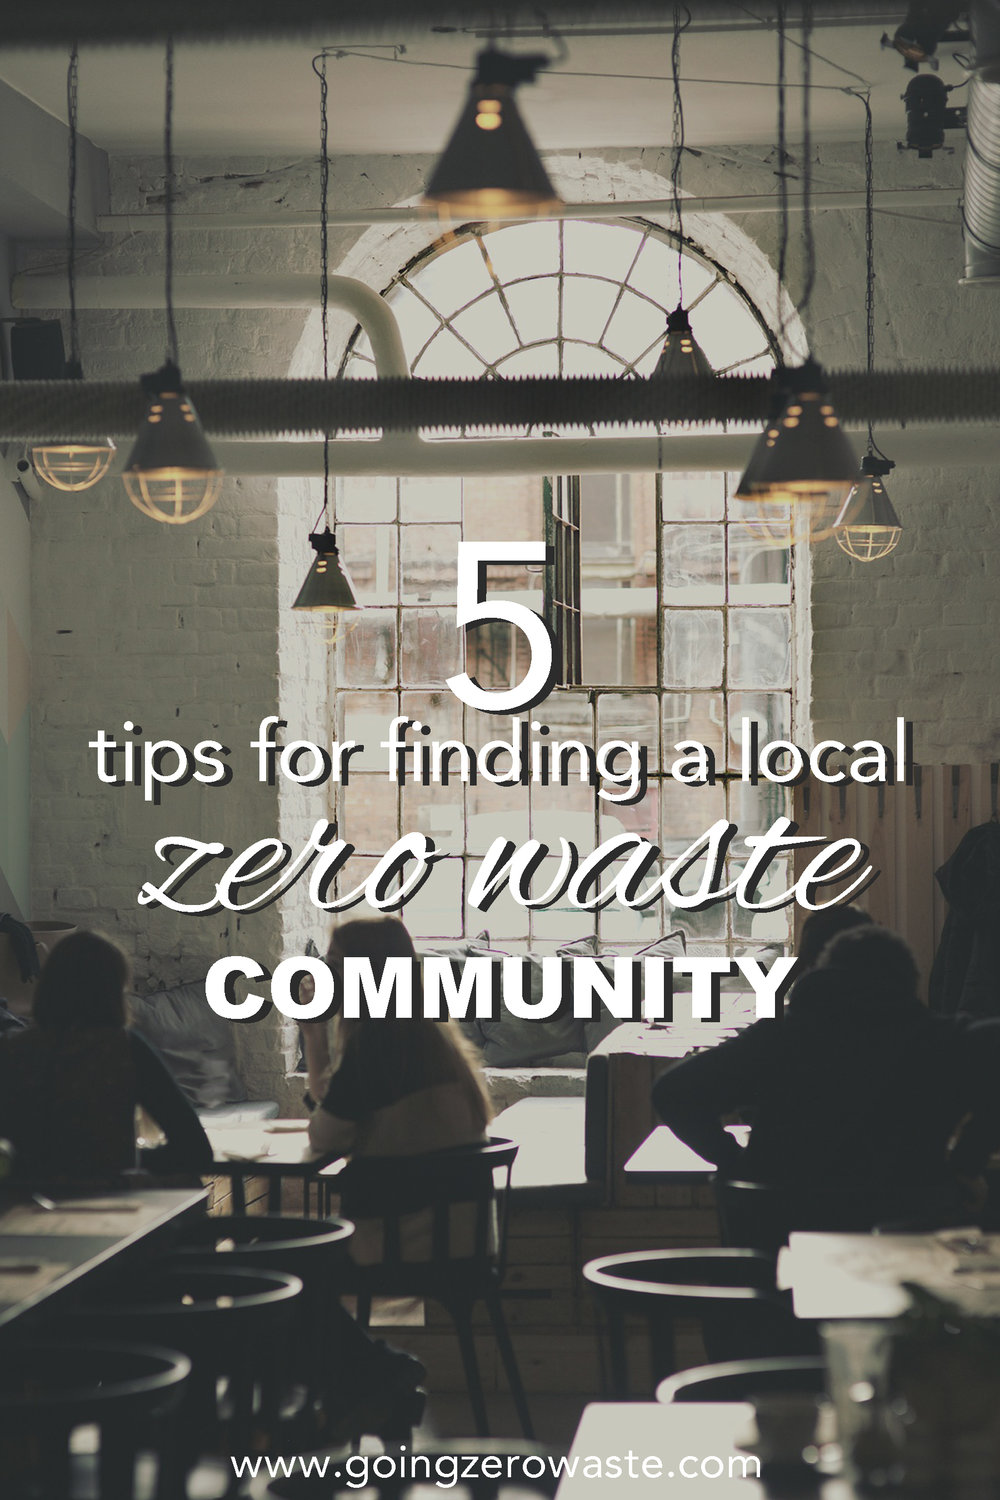 Five tips for finding a local zero waste community from www.goingzerowaste.com